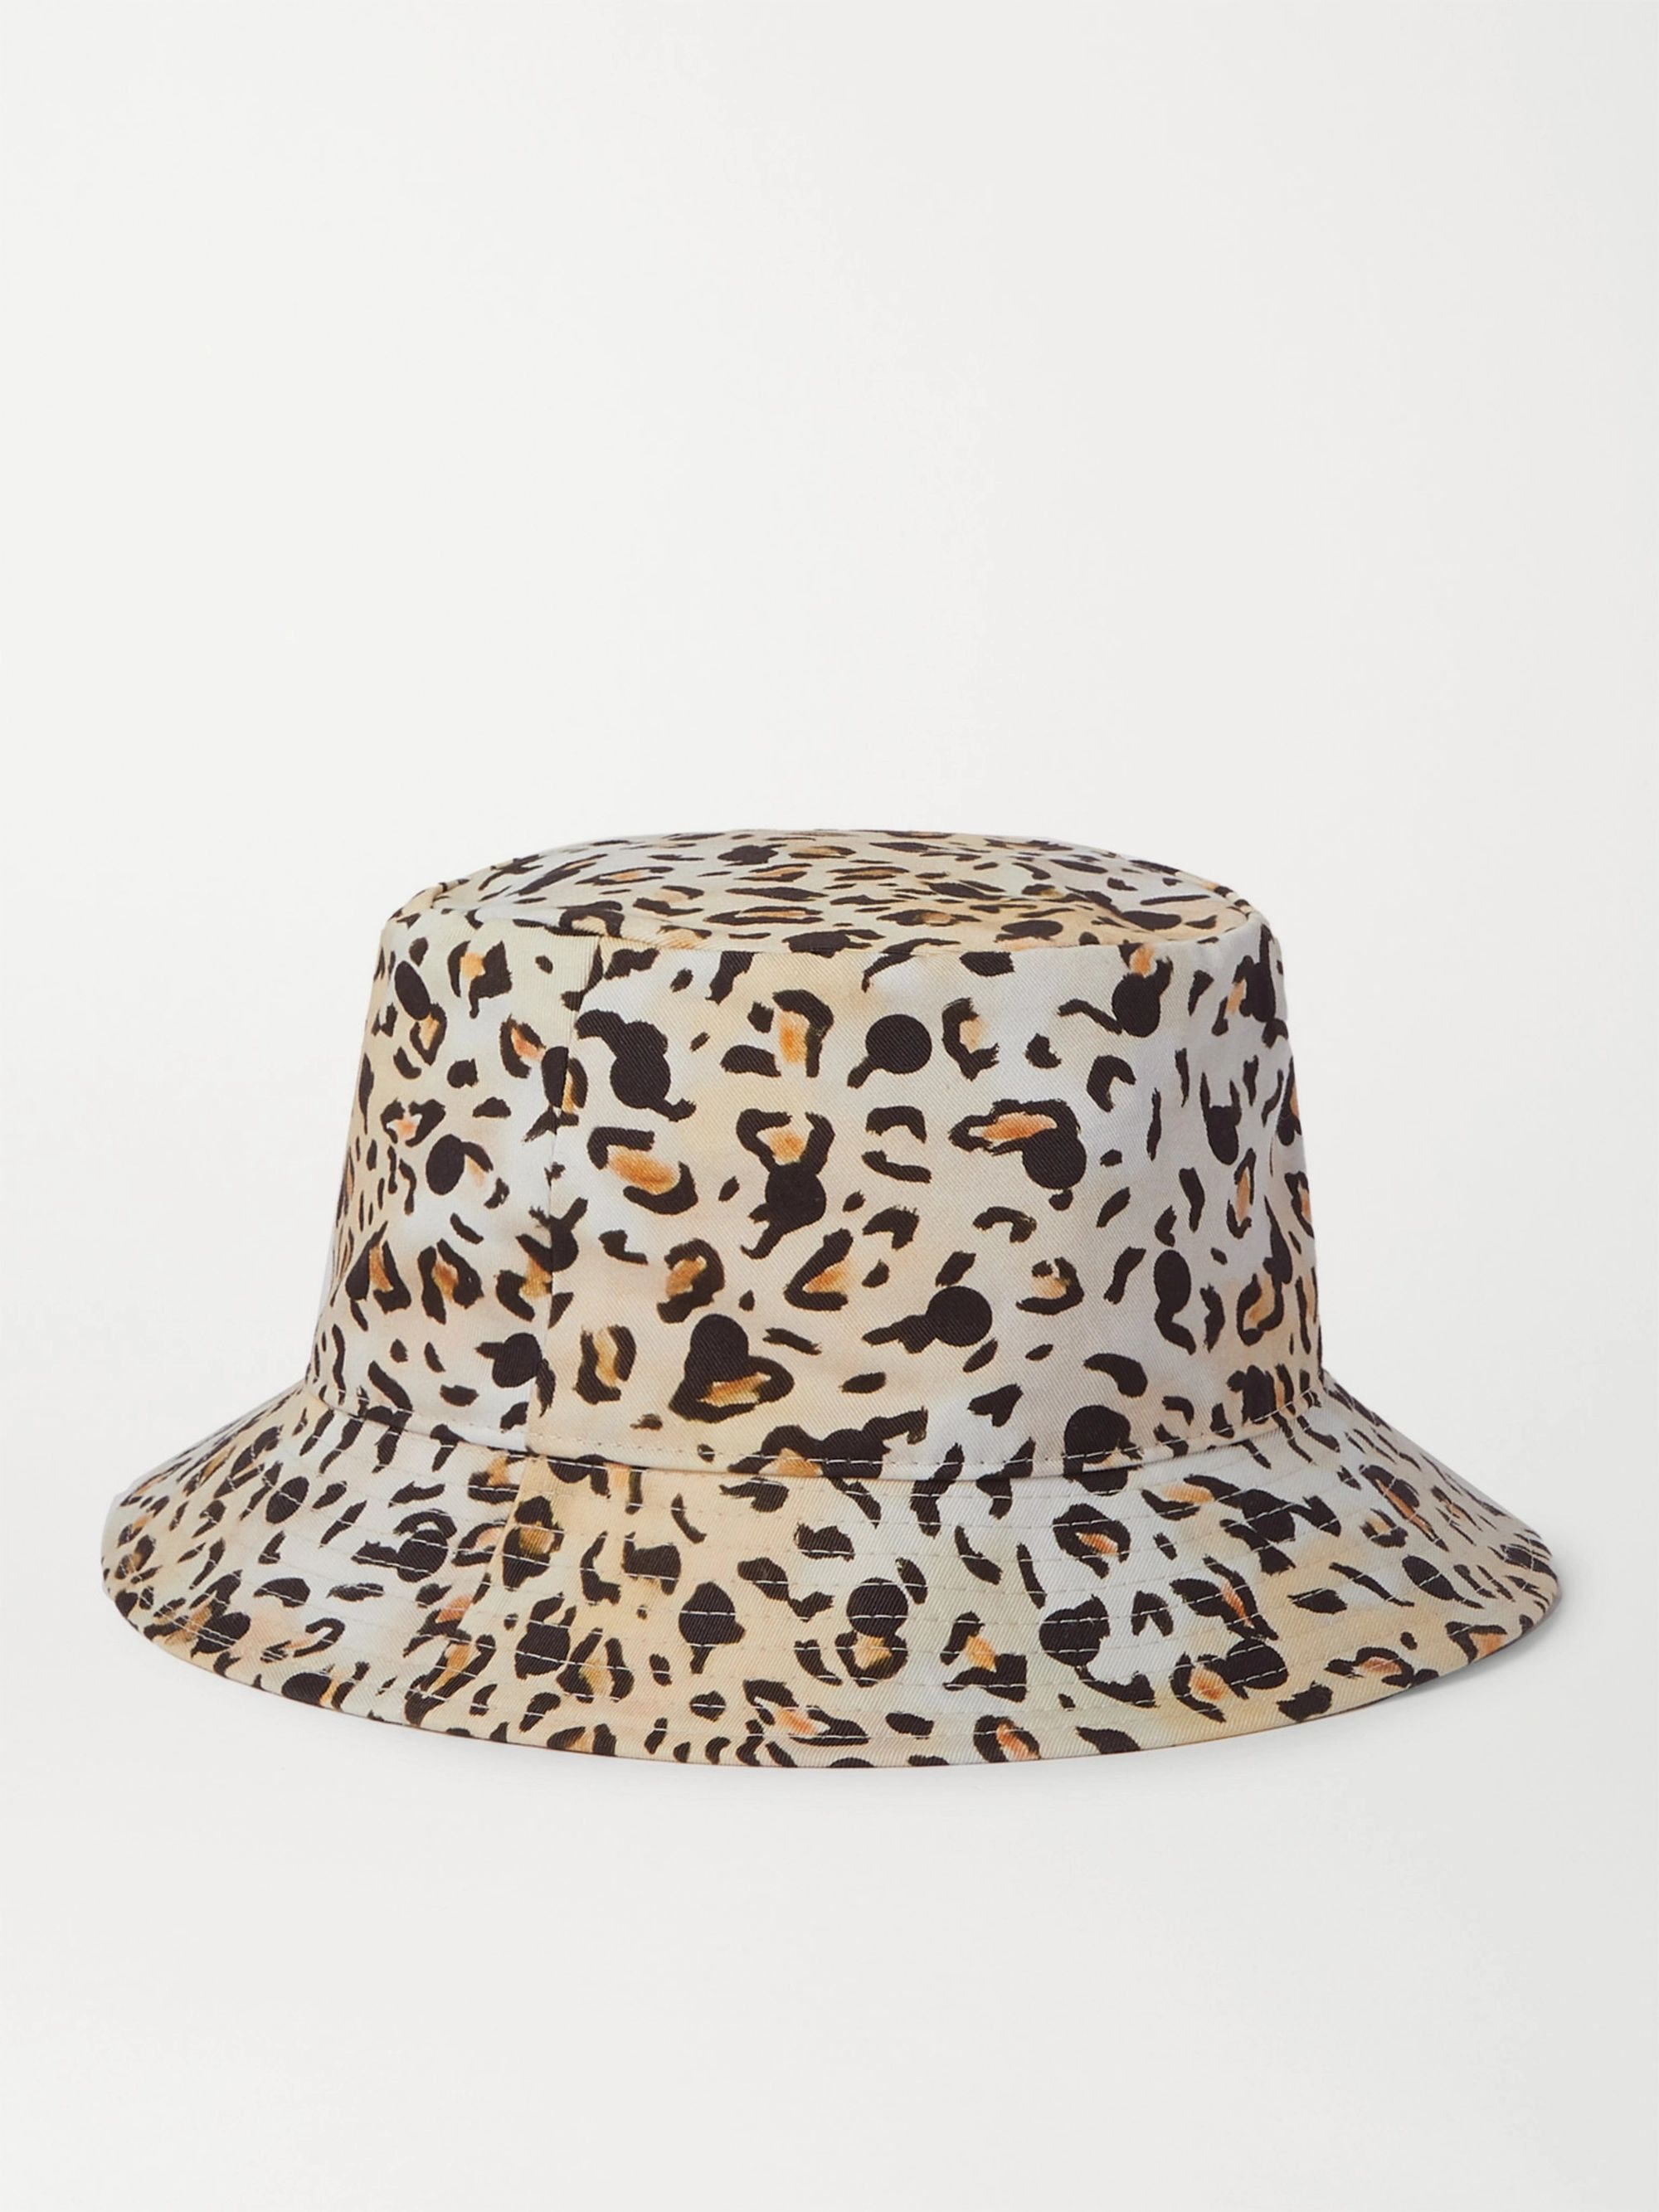 CELINE HOMME + Gregory Edwards Stranded in the Jungle Printed Cotton-Drill Bucket Hat